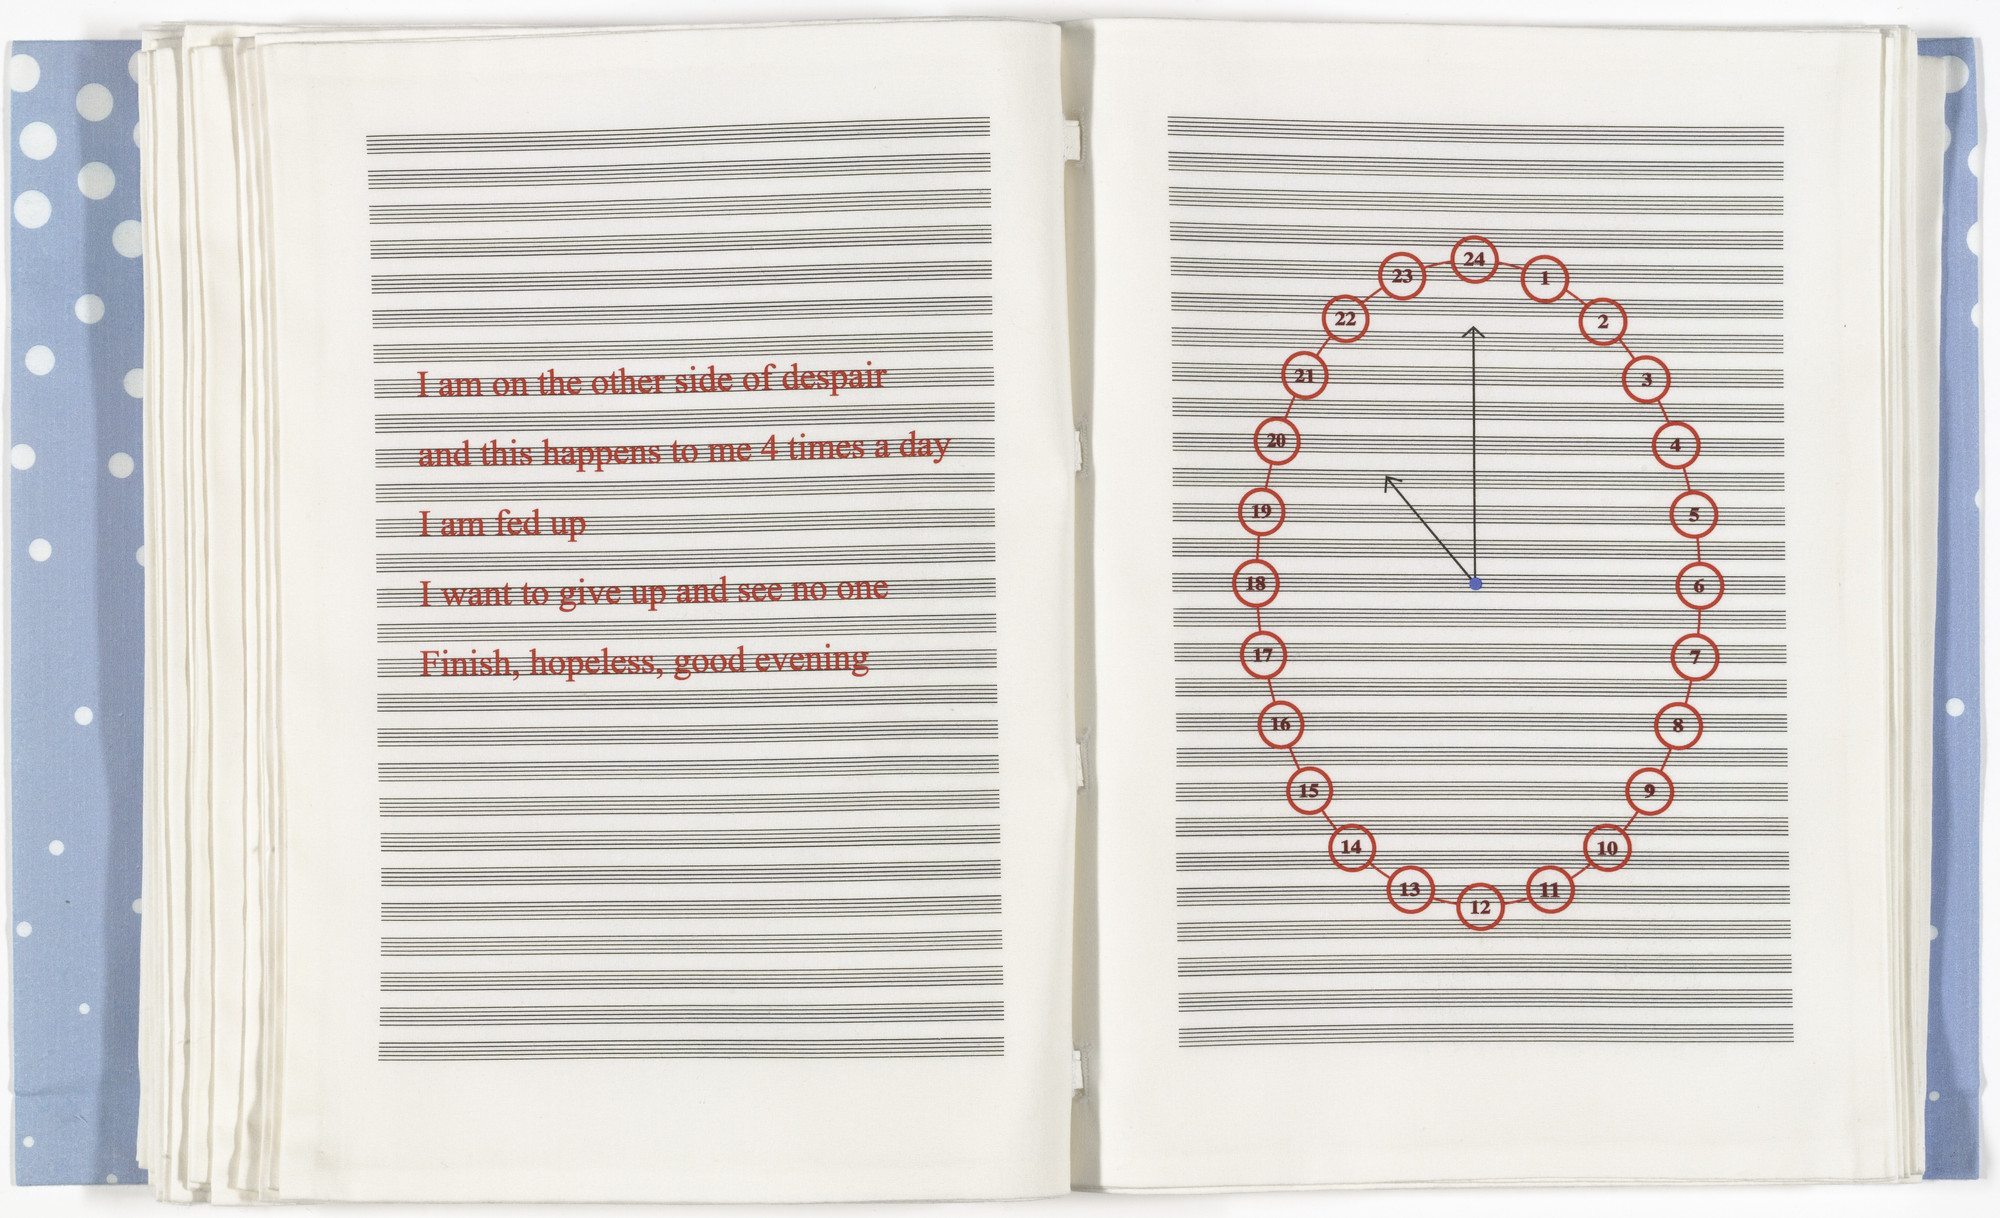 Louise Bourgeois. Untitled, no. 16 of 24, from the illustrated book, Hours of the Day. 2006